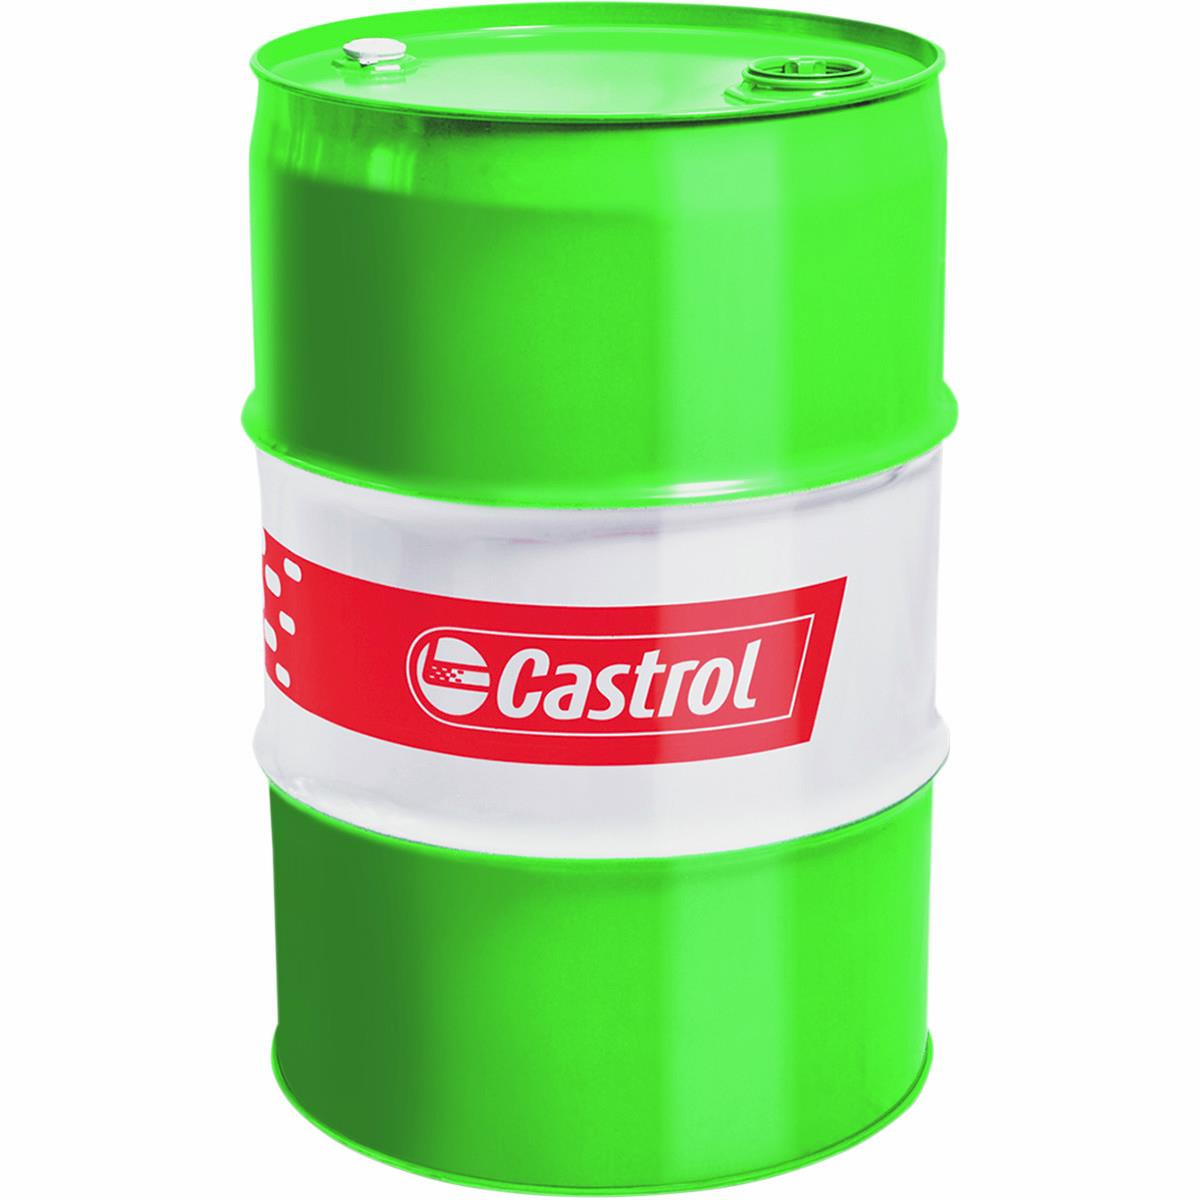 Castrol 55130 / 159A9C Actevo X-Tra 4T Synthetic Blend - 10W40 - 55gal. Drum